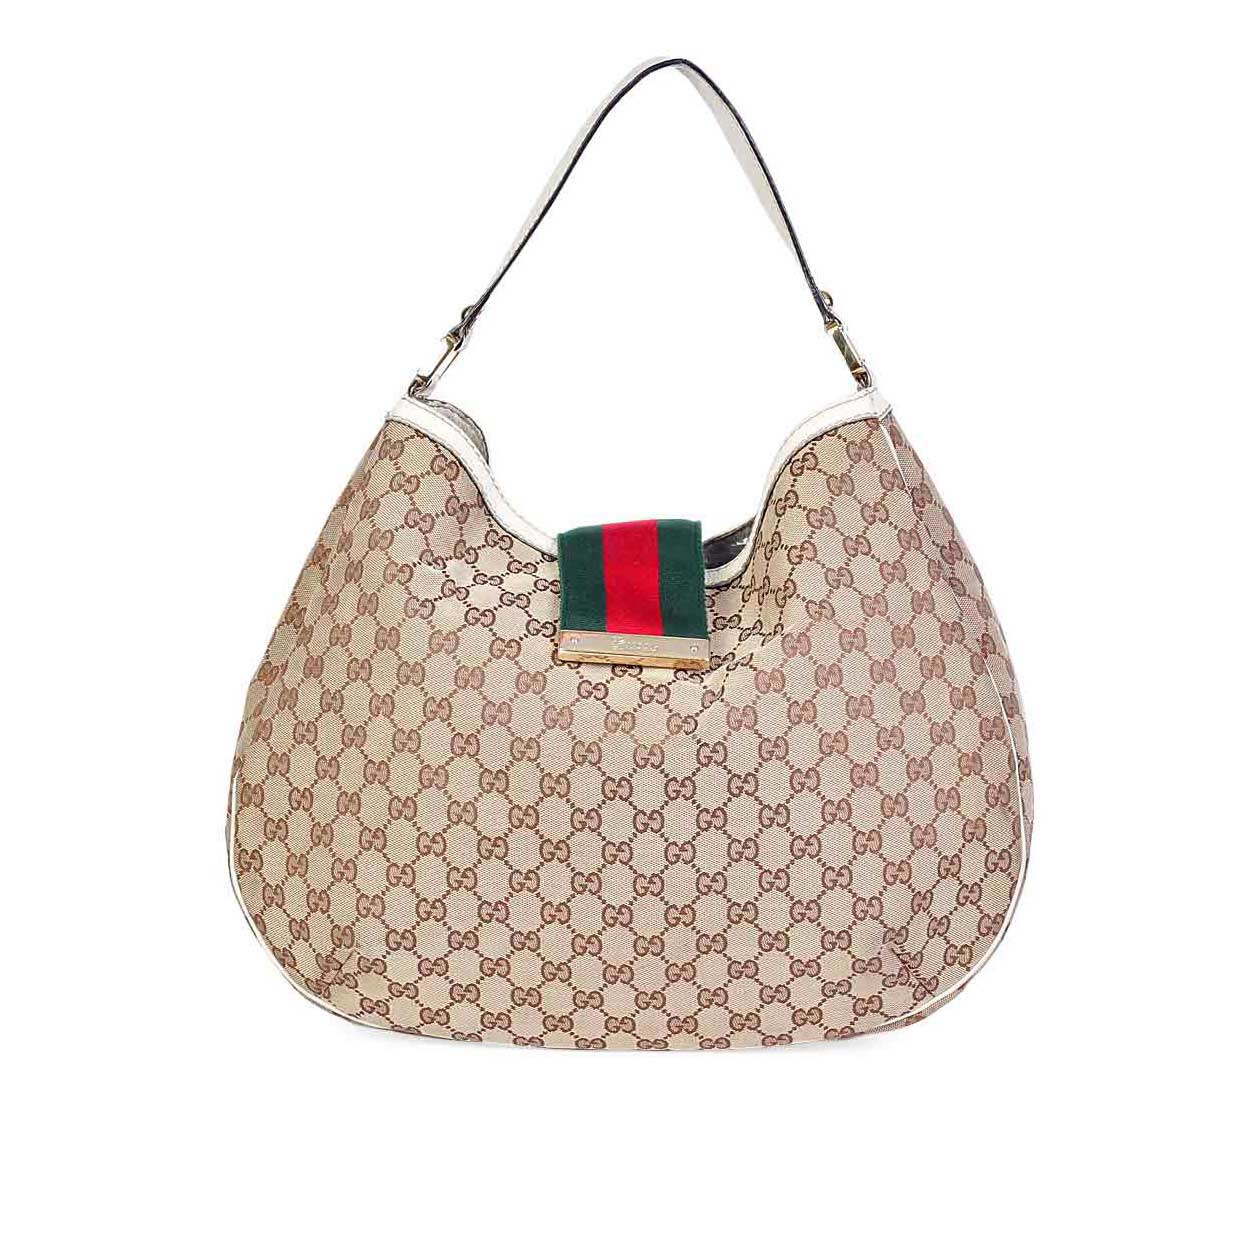 f72091c0d4b6 GUCCI Leather Jackie Original Shoulder Bag Ivory. $ 2,190.00 $ 1,022.00  Select options · Promo!